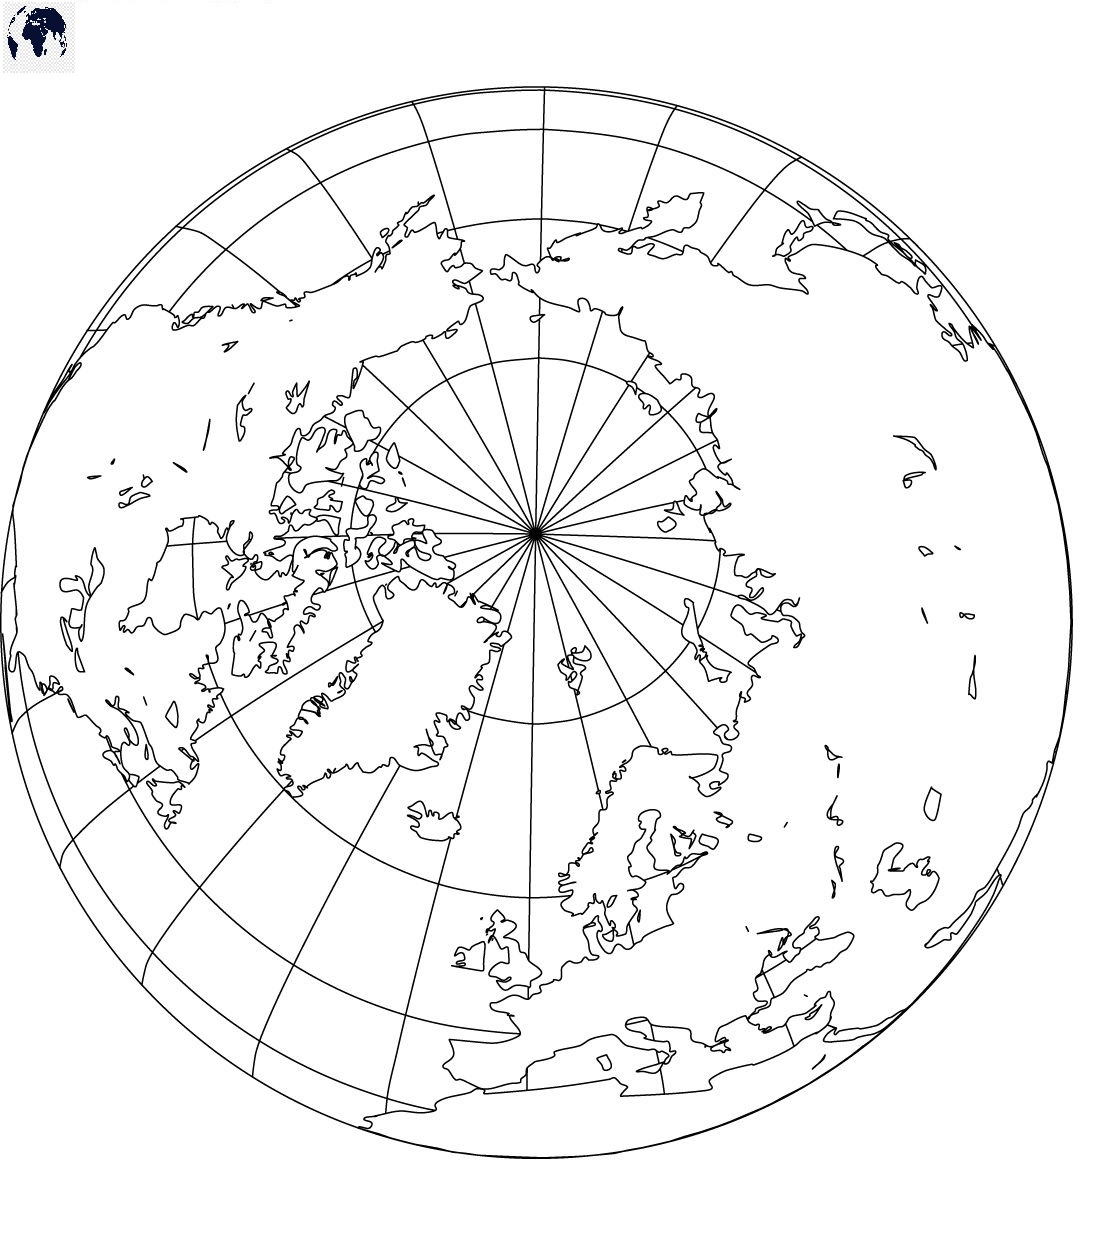 Blank World Map with the North Pole